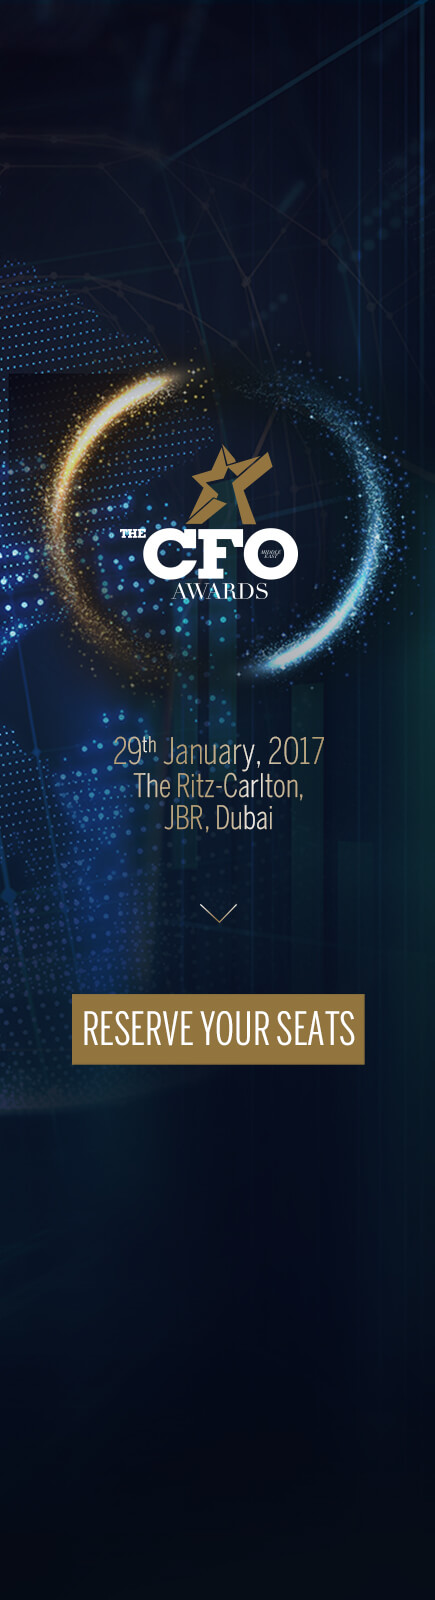 The CFO ME Awards | Reserve your seats